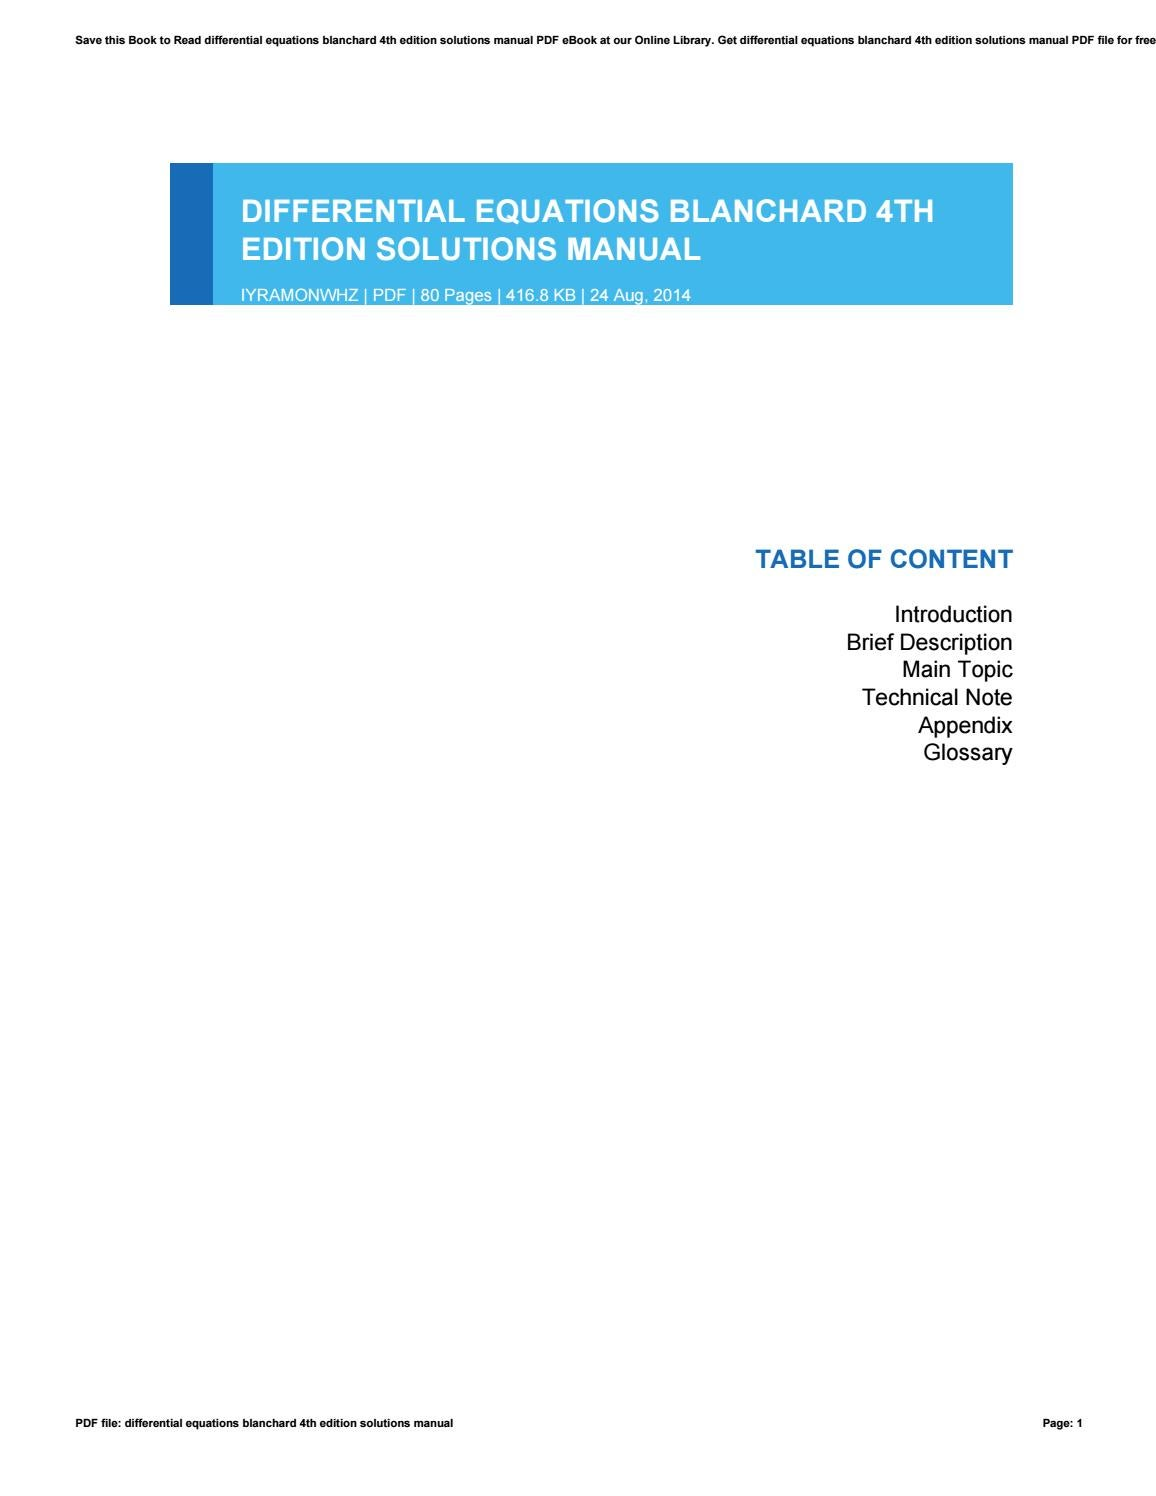 Differential equations blanchard 4th edition solutions manual by  LillieDipietro1921 - issuu